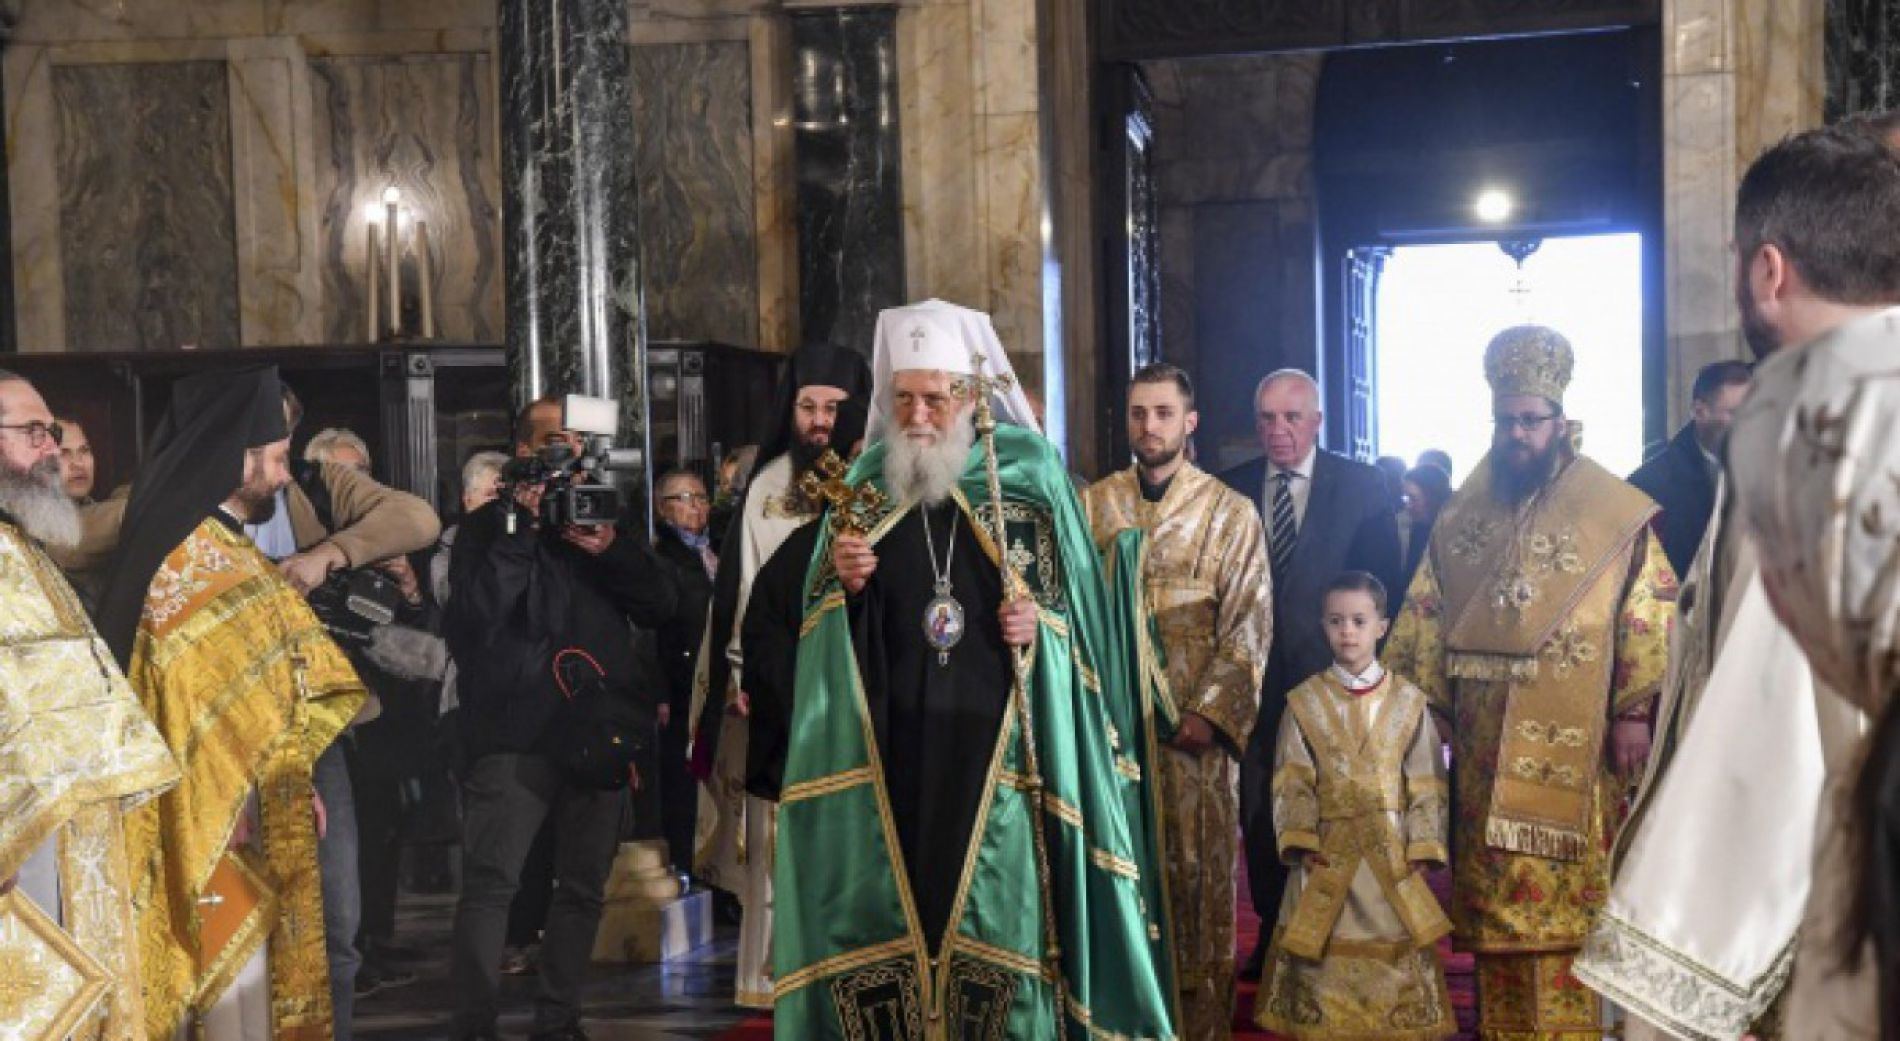 Patriarch Neophyt will serve a moleben for the new year 2020